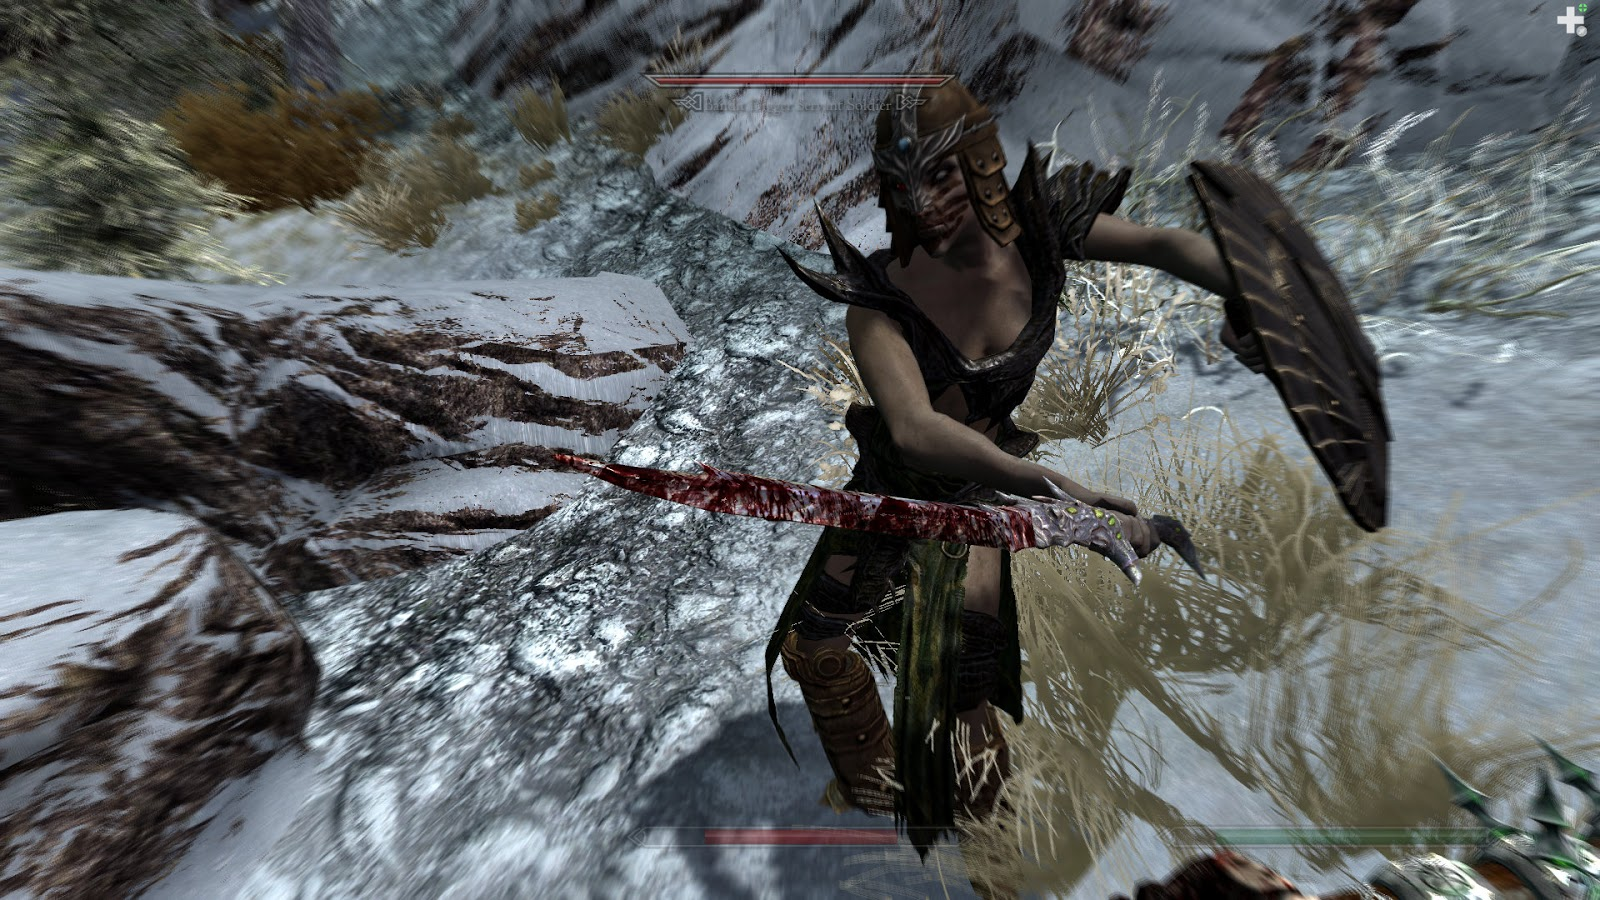 Organised Bandits In Skyrim  Are You Bored Of The Same Old Bandits  Spawning Over And Over Again? The Useless Fools In Fur Armour With Iron War  Axes?